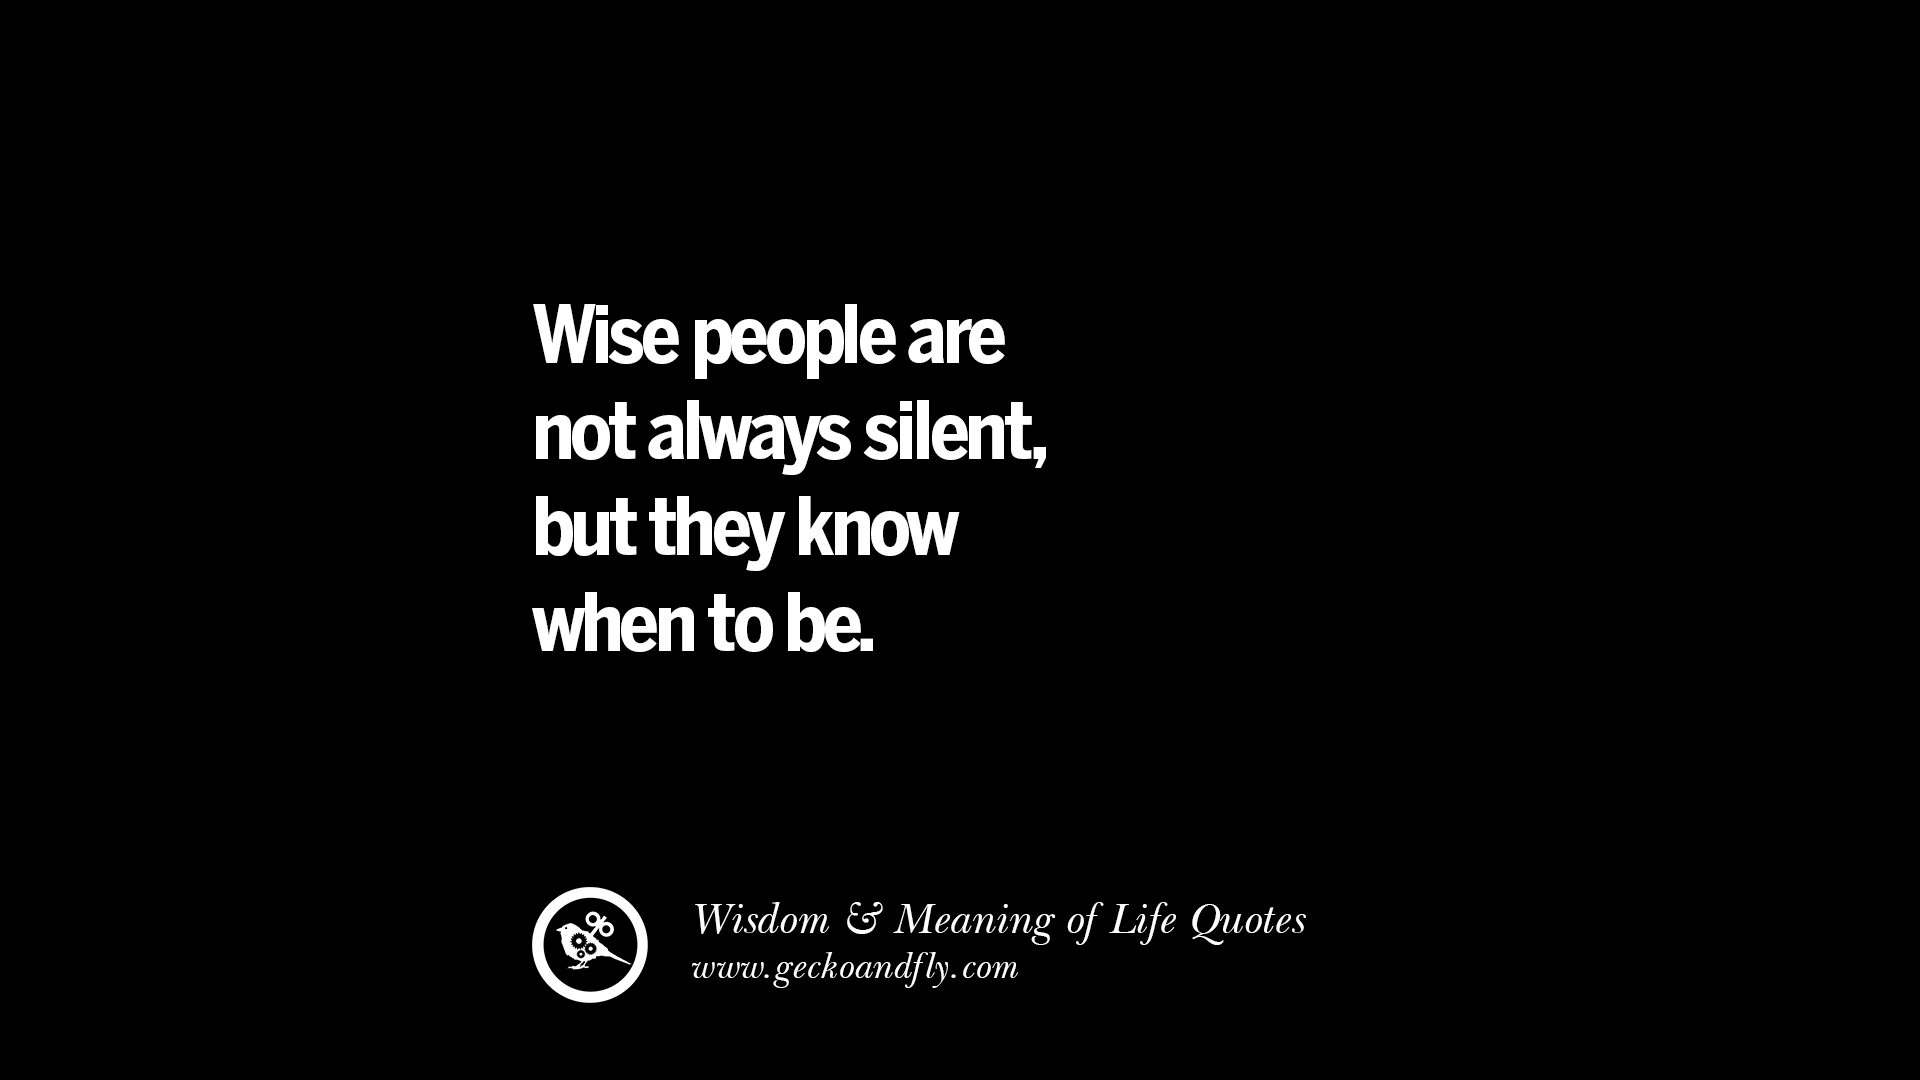 Life Funny Quotes 24 Funny Eye Opening Quotes About Wisdom Truth And Meaning Of